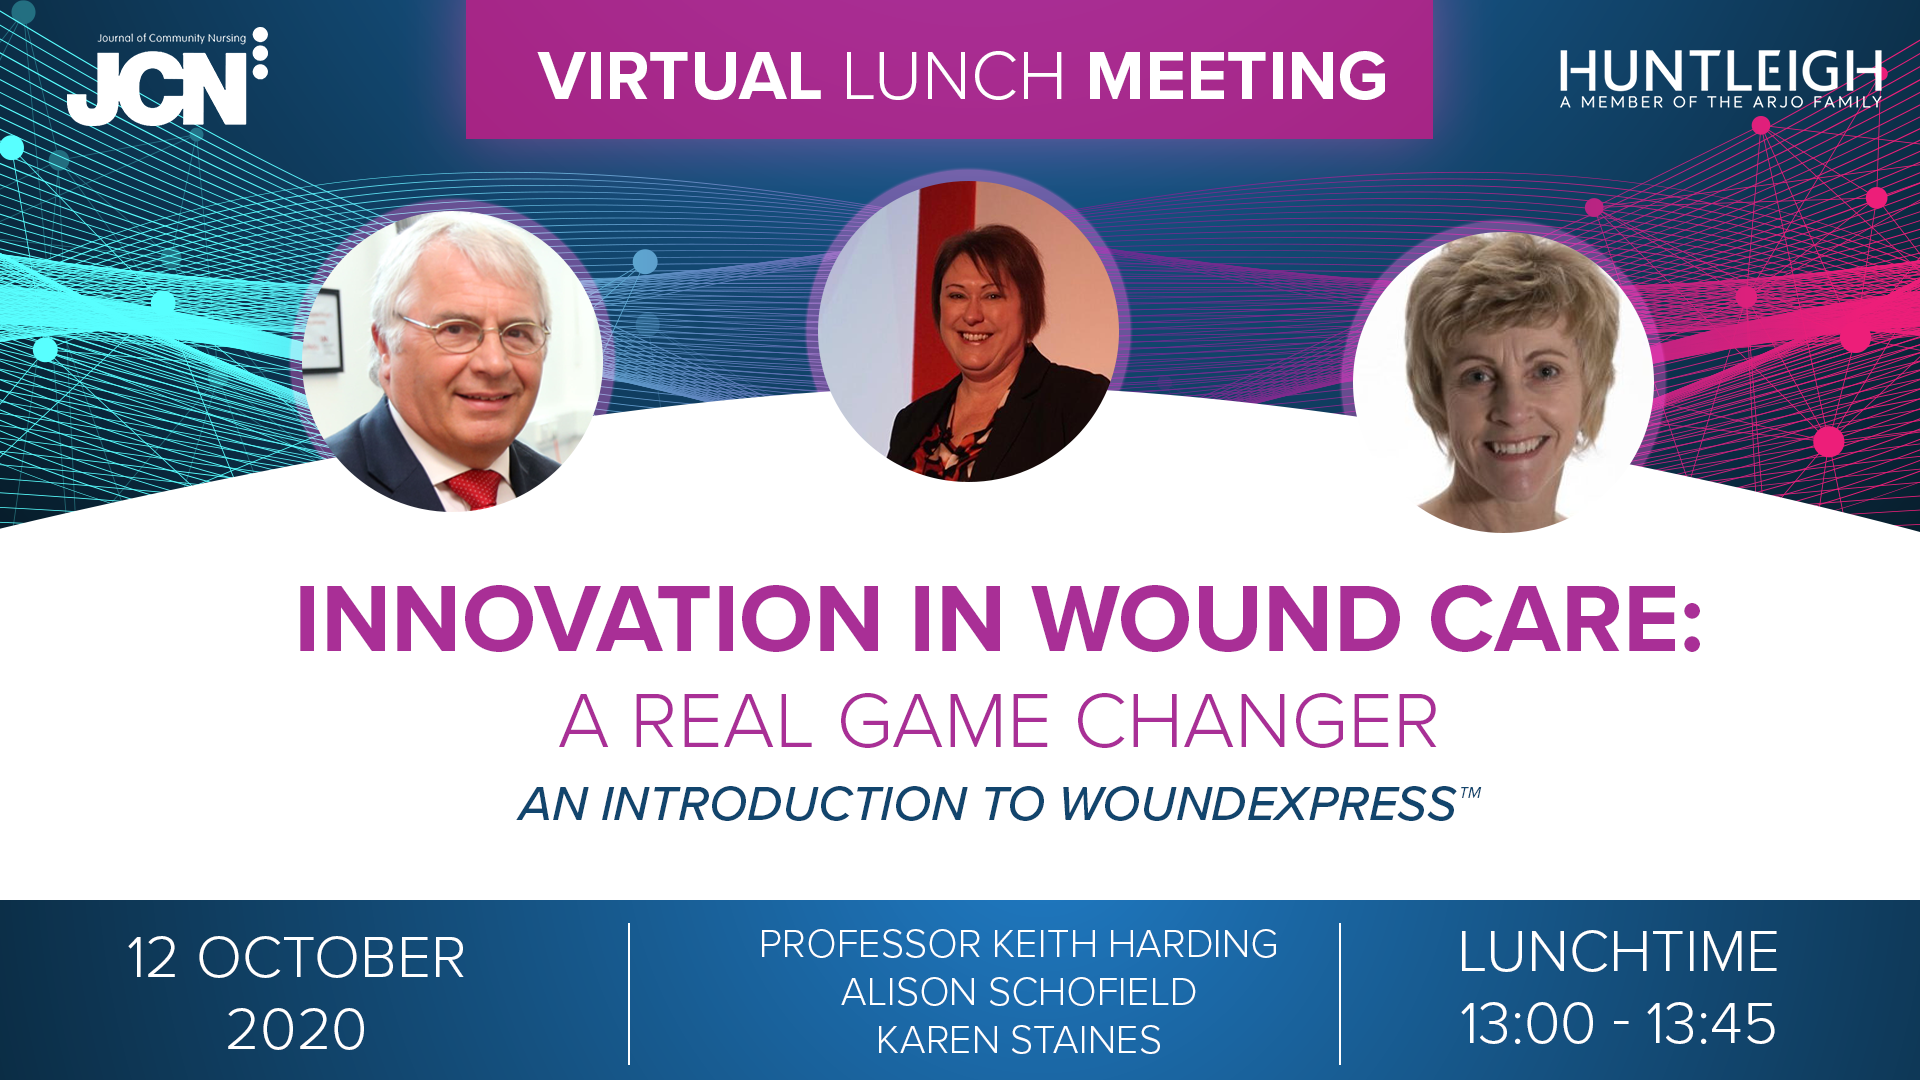 Virtual Lunch Metting: Innovation in wound care - a real game changer. An introduction to Wound Express